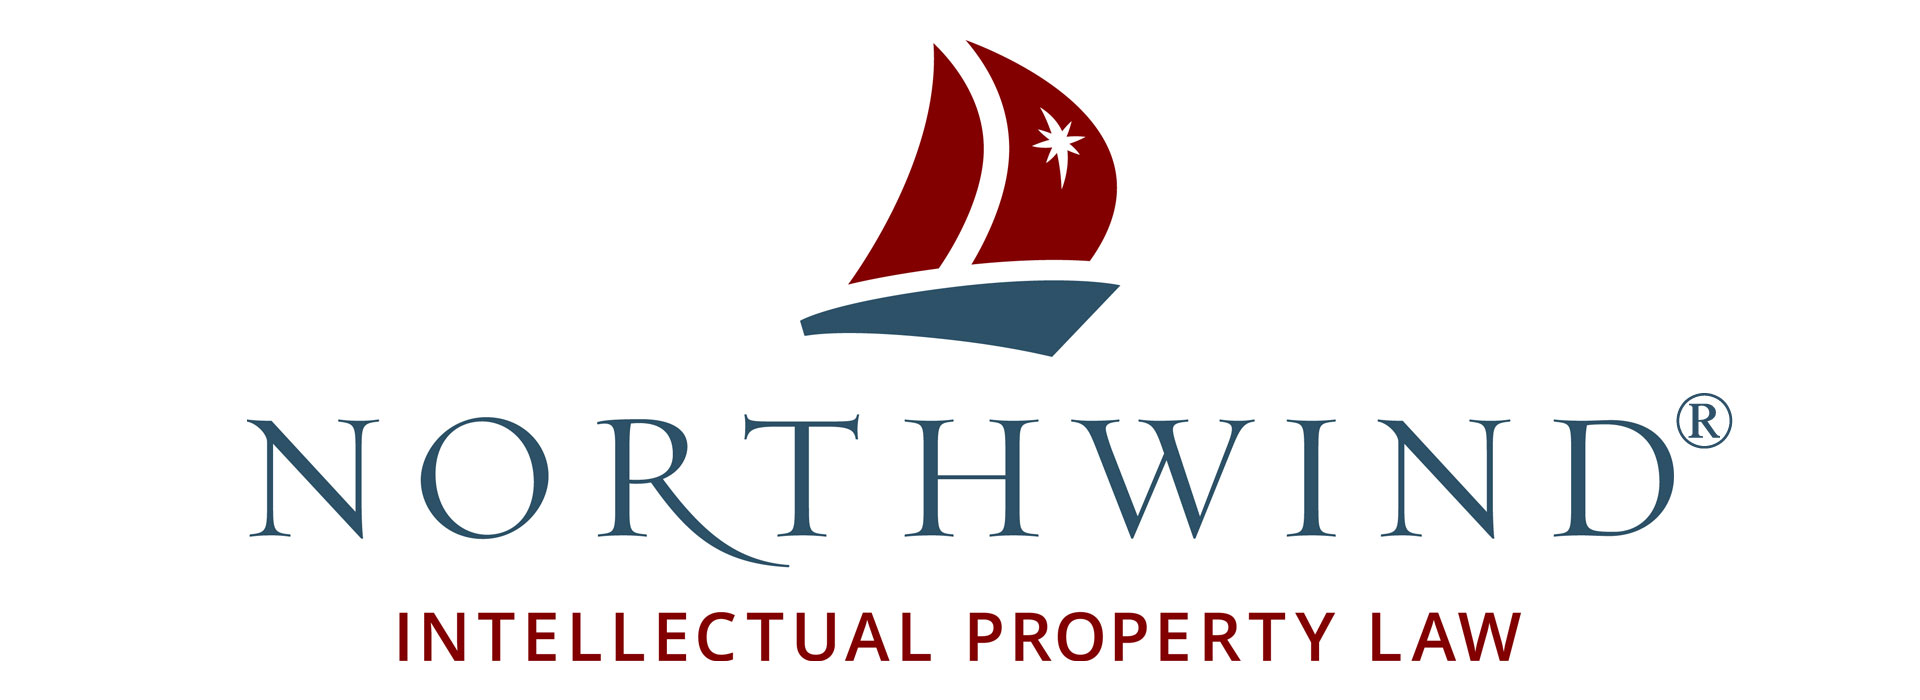 Wisconsin Intellectual Property Attorneys: Patent, Copyright